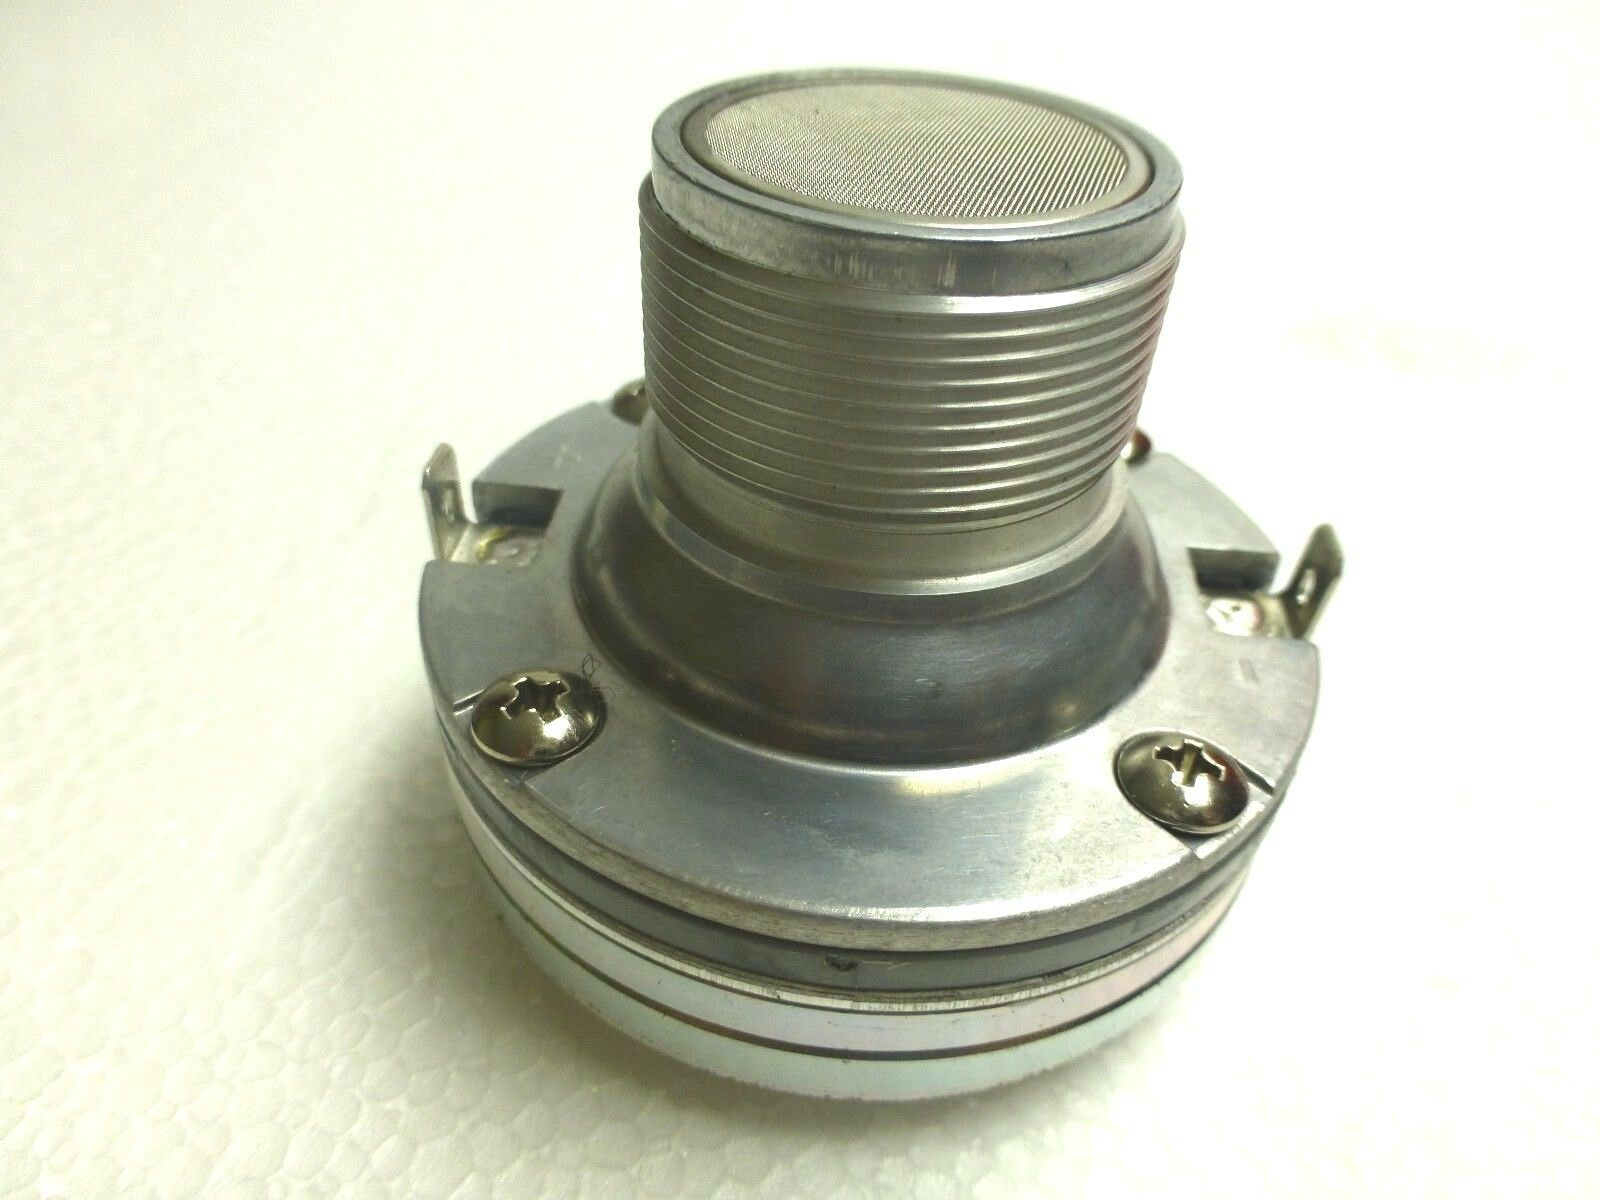 Replacement Driver For JBL 2408, JBL 2408-H Neodymiun Screw-On Complete Driver